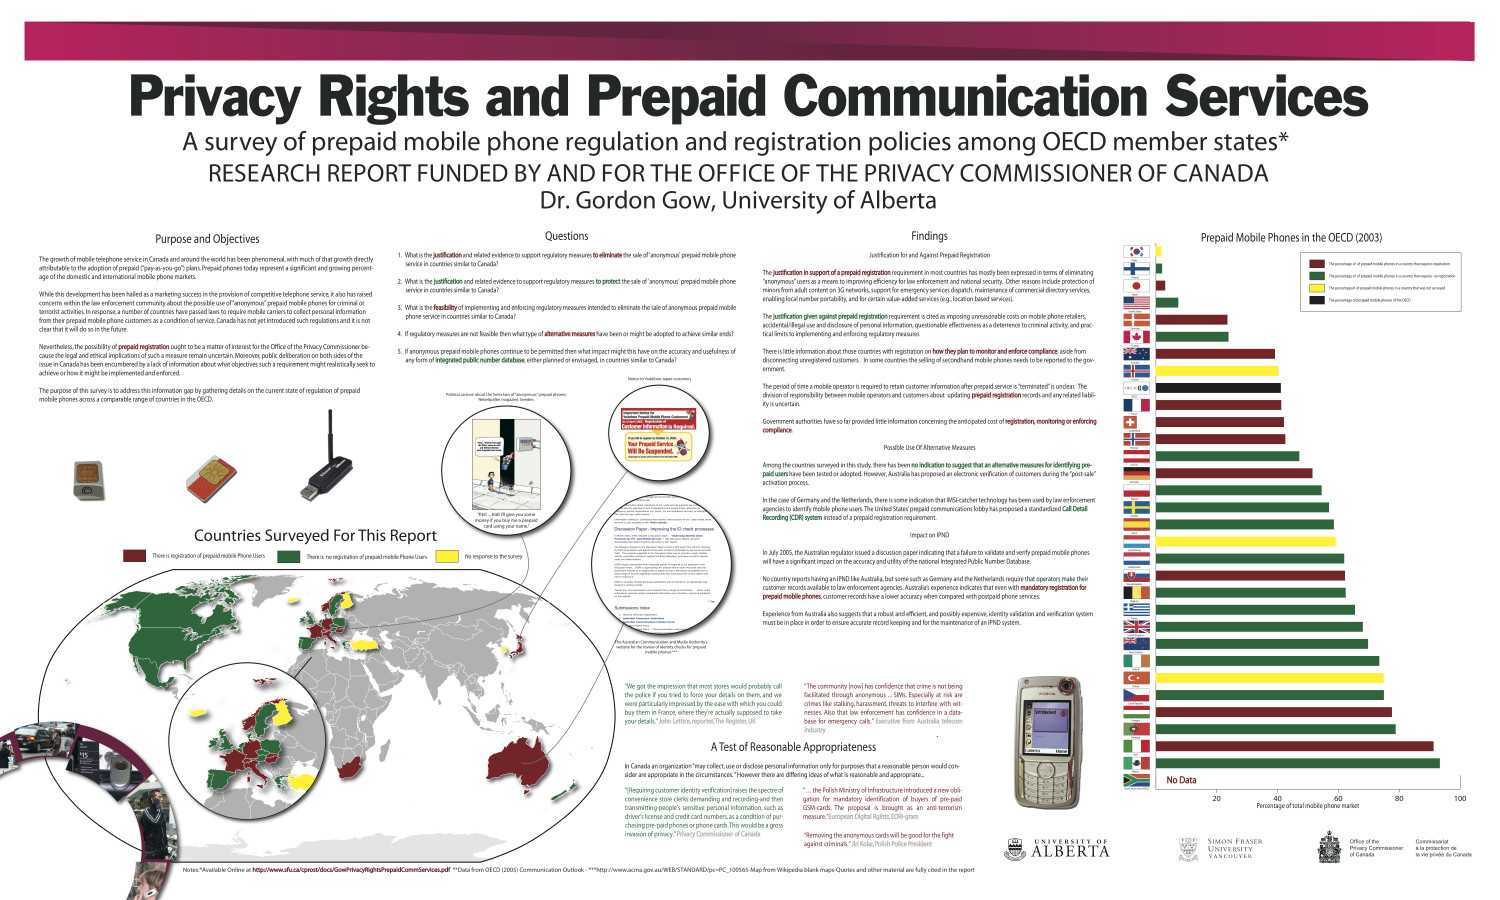 Privacy Rights and Prepaid Communication Services Infographic